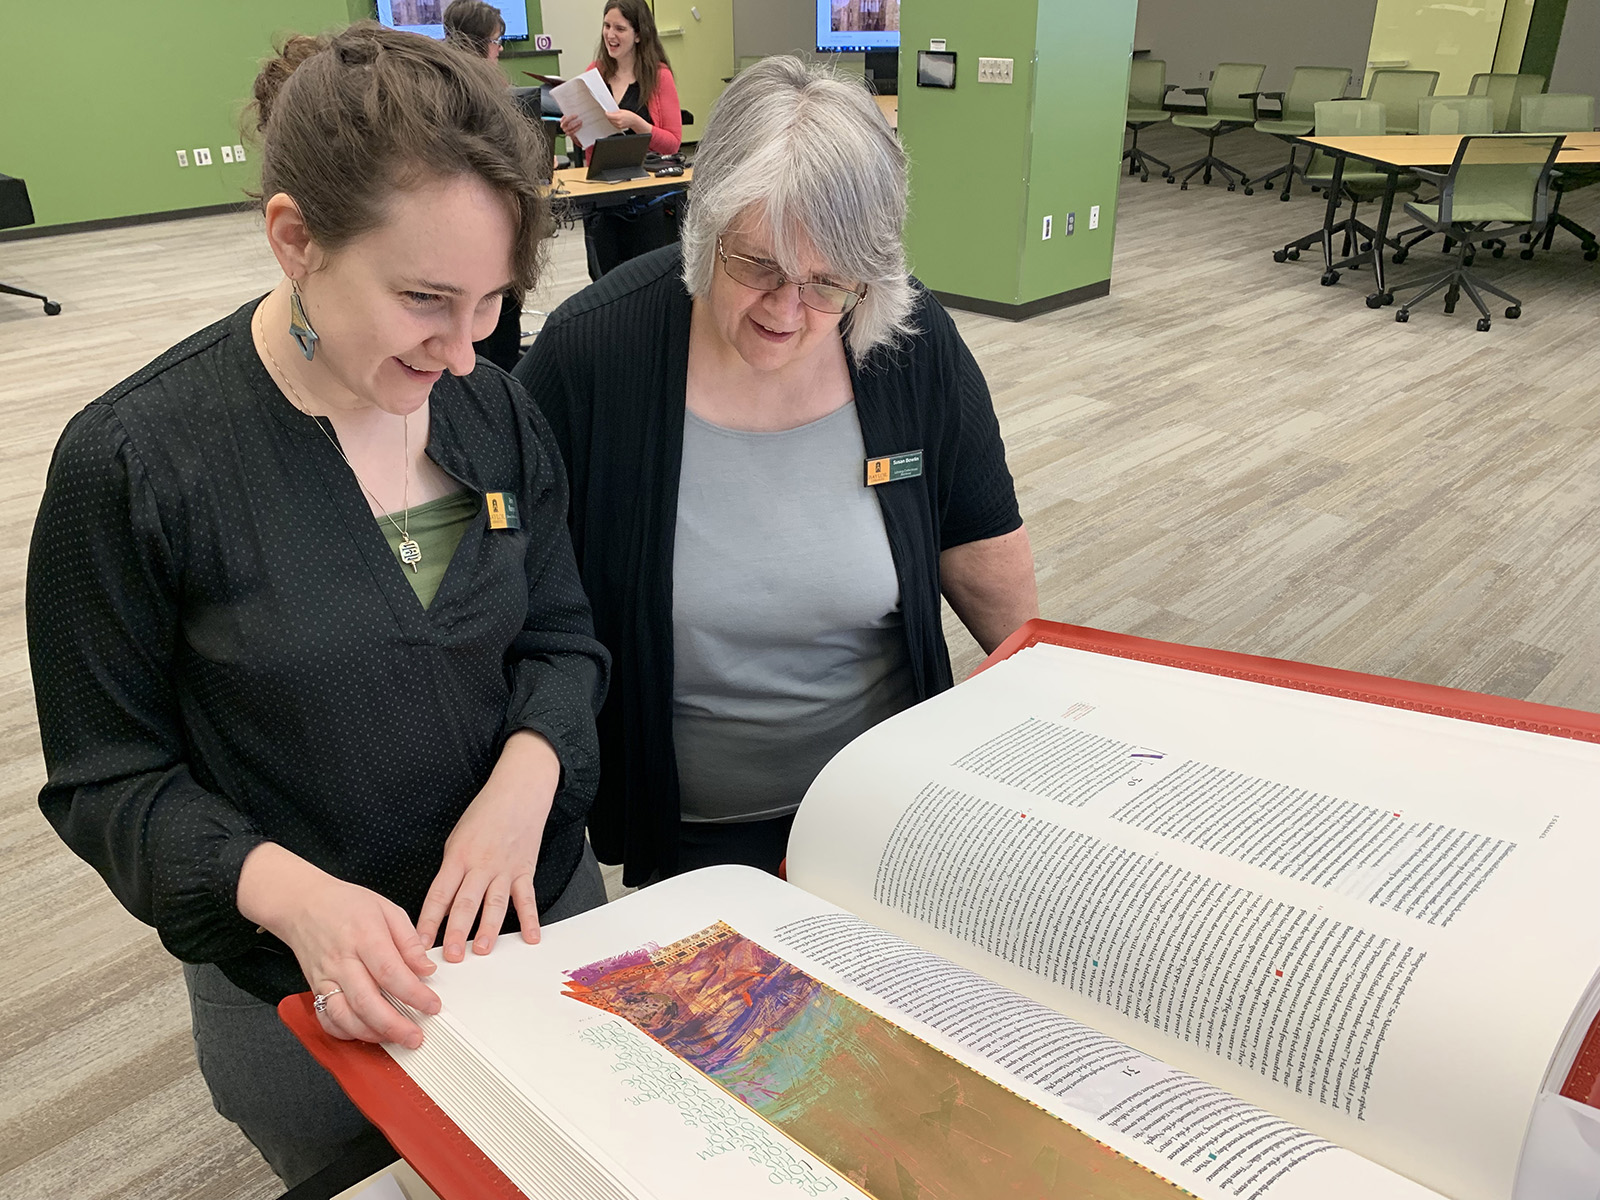 Amy Runyon and Susan Bowlin examine a volume from the St. John's Bible